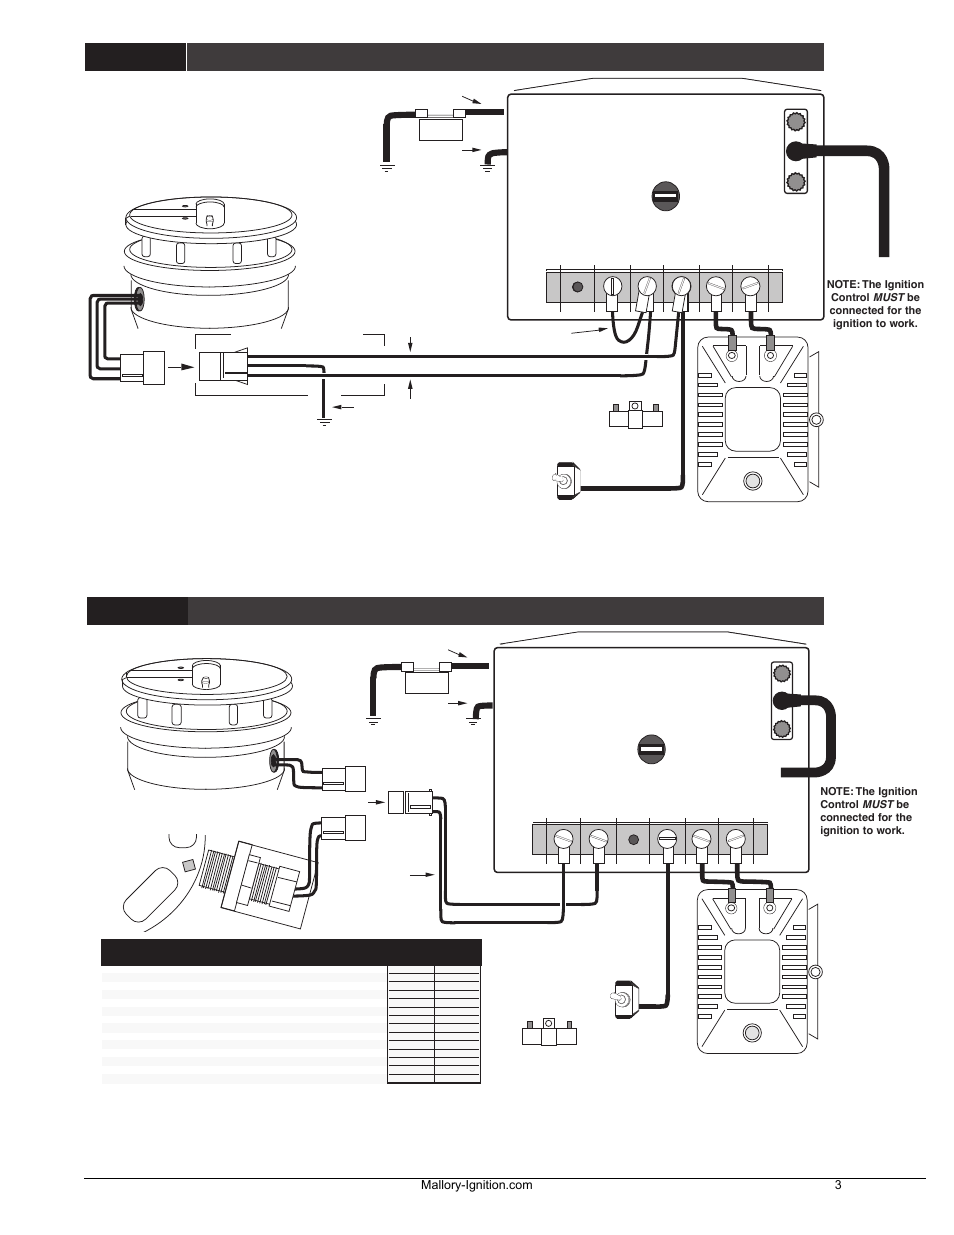 Mallory Magneto Wiring Diagram Another Blog About Small Engine Ignition 29440 Dist